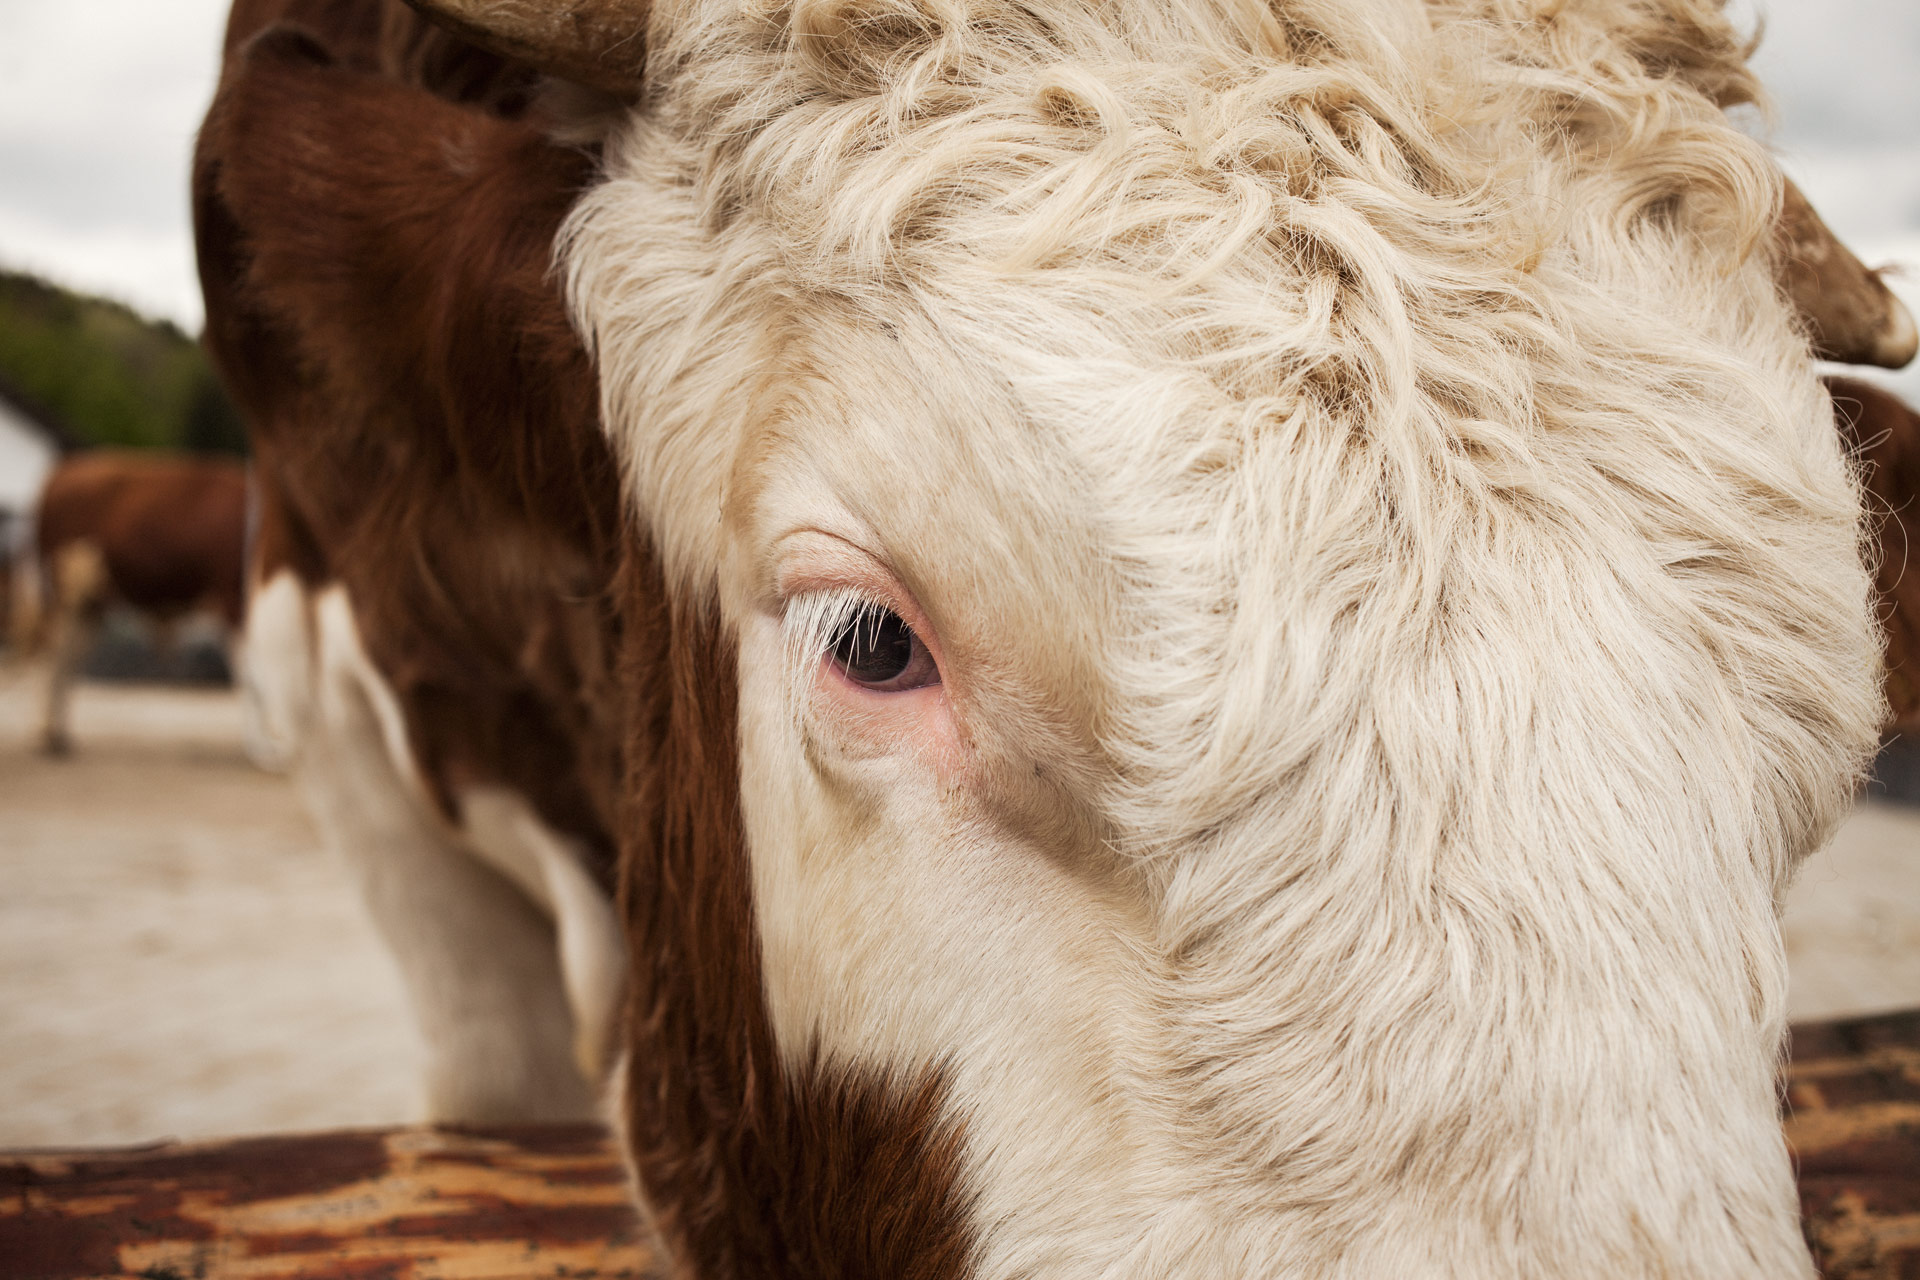 timo-stammberger-photography-fotografie-tiere-kuh-cow-portrait-erdlingshof-mitgefuehl-compassion